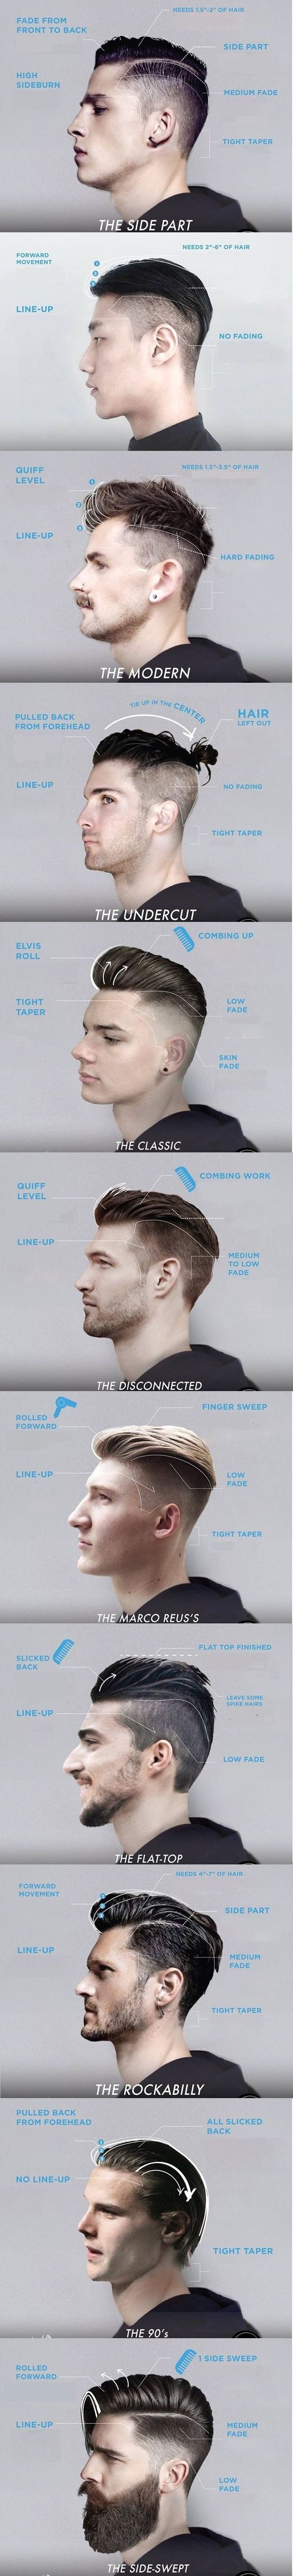 Pin by Victoriakenny on Short Hairstyles Pinterest